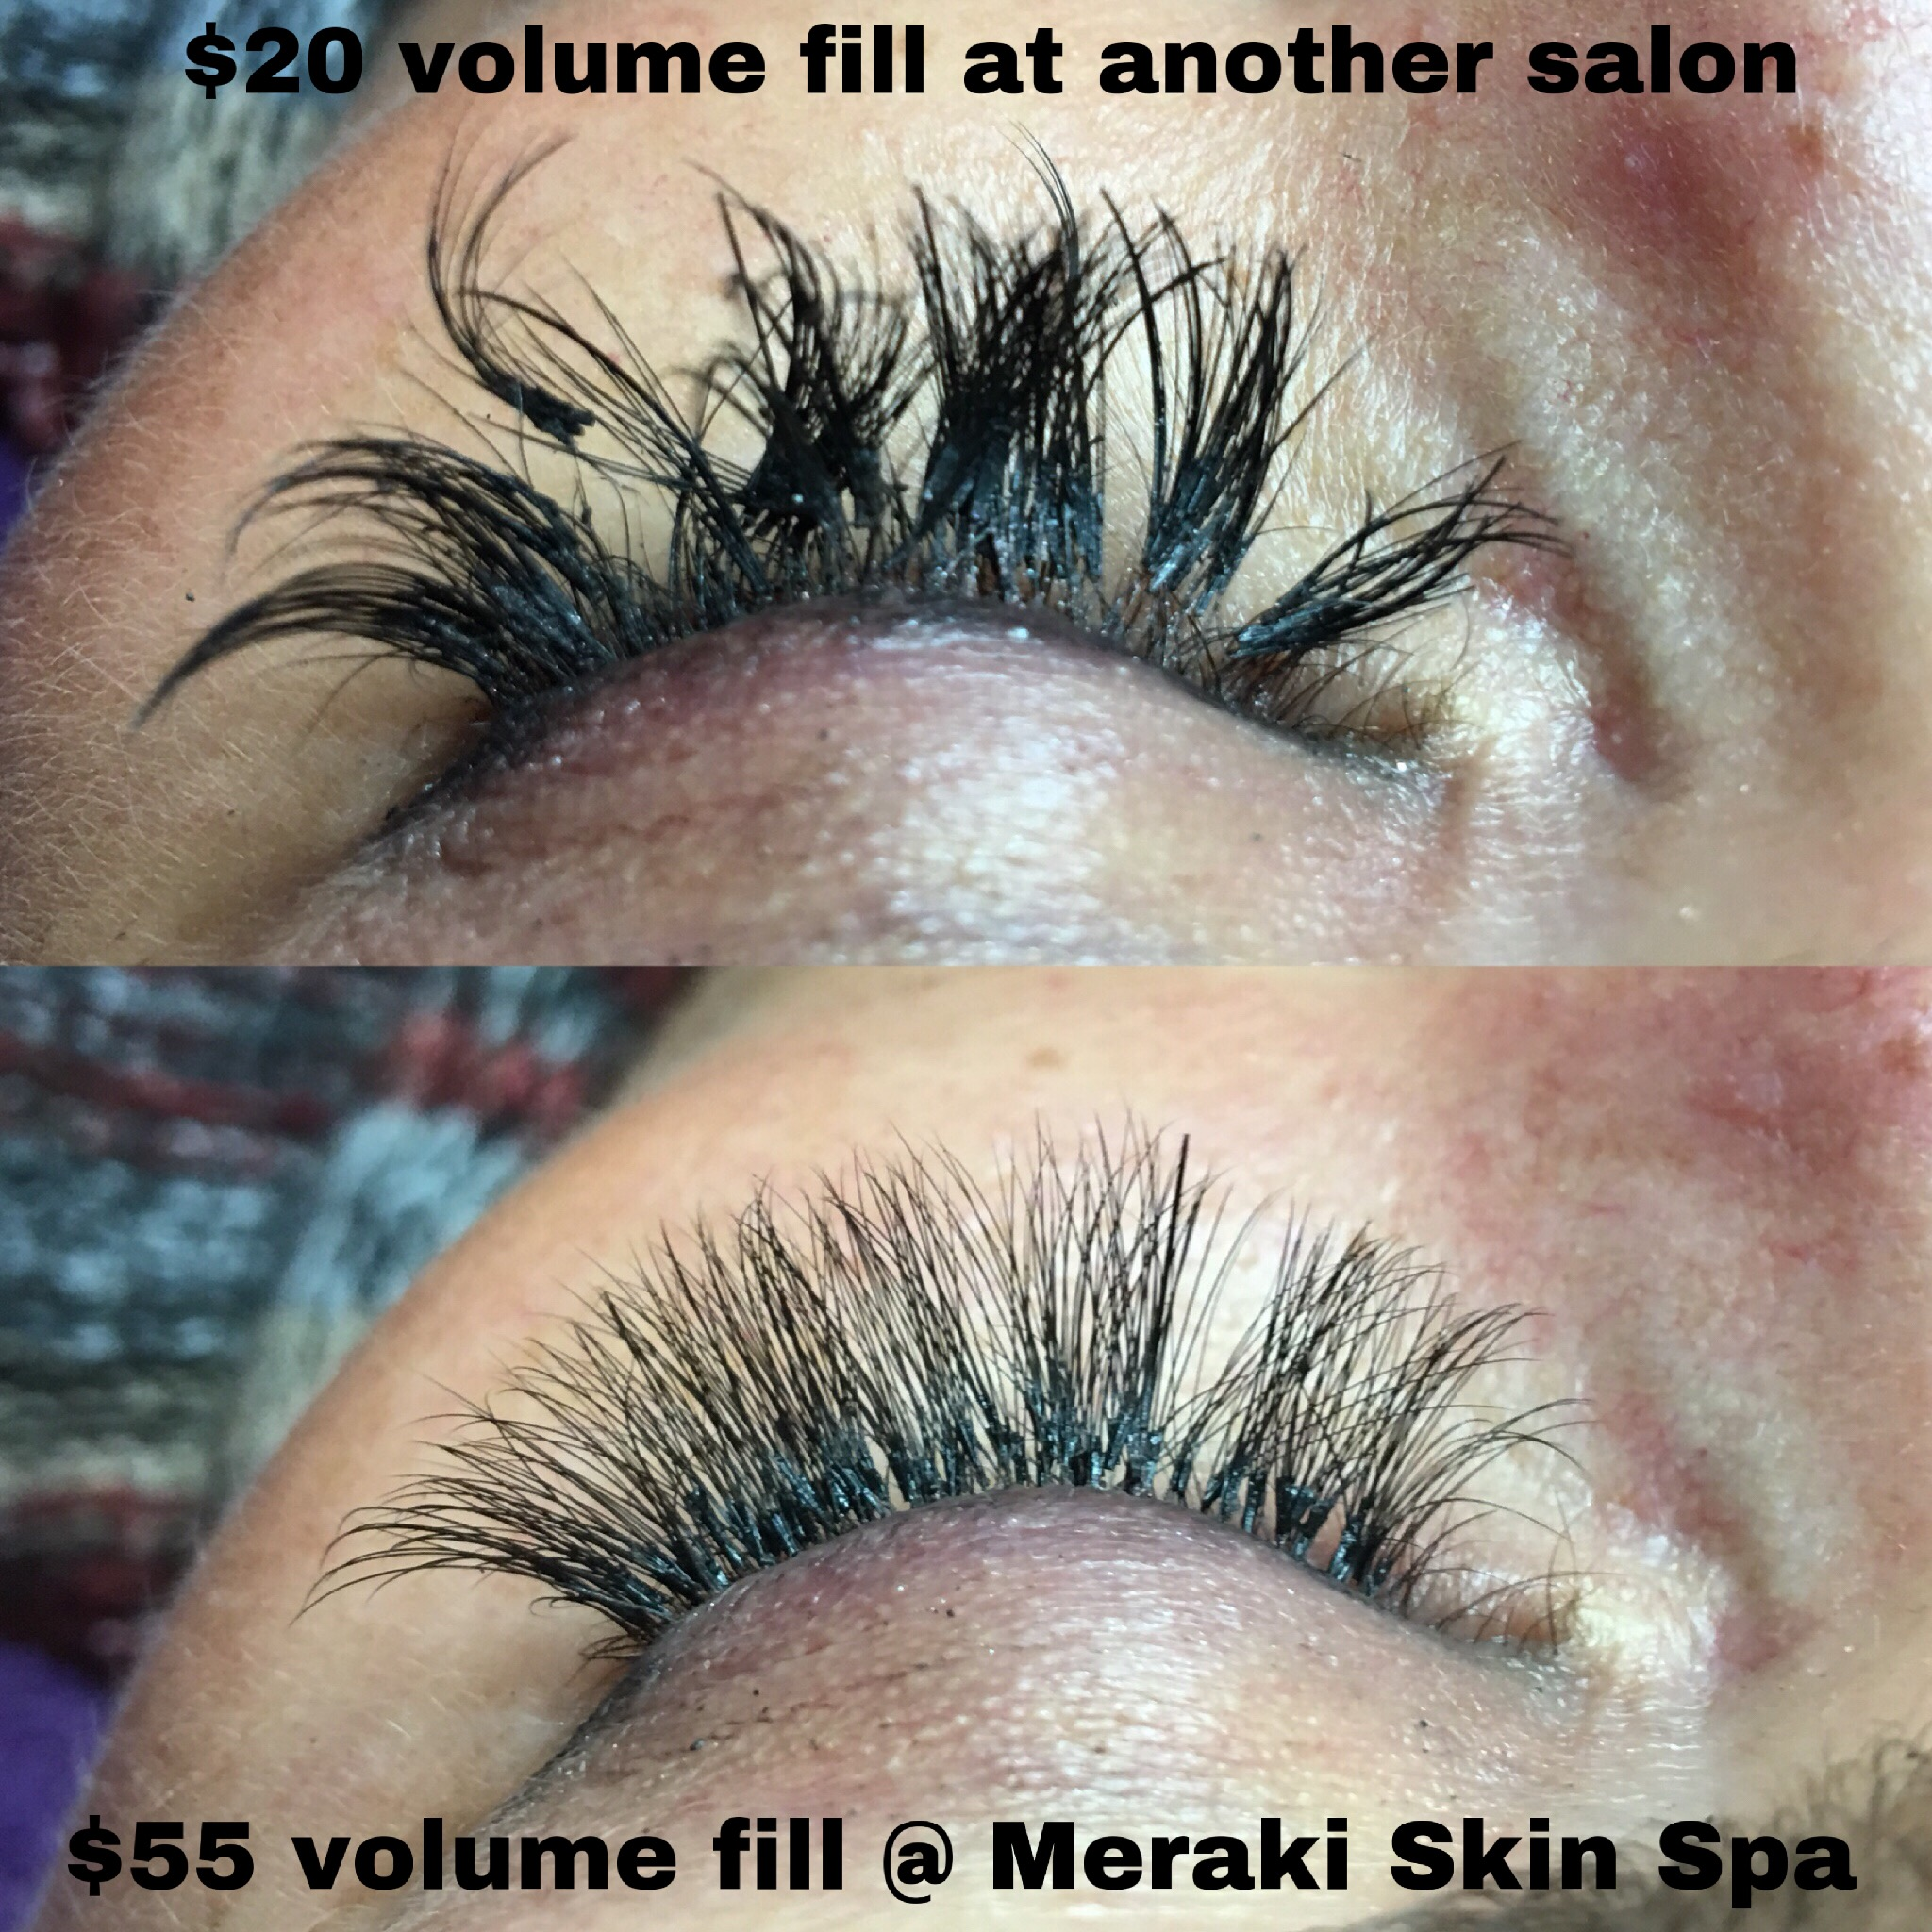 alt text botched, bad volume lash extensions meridian Idaho